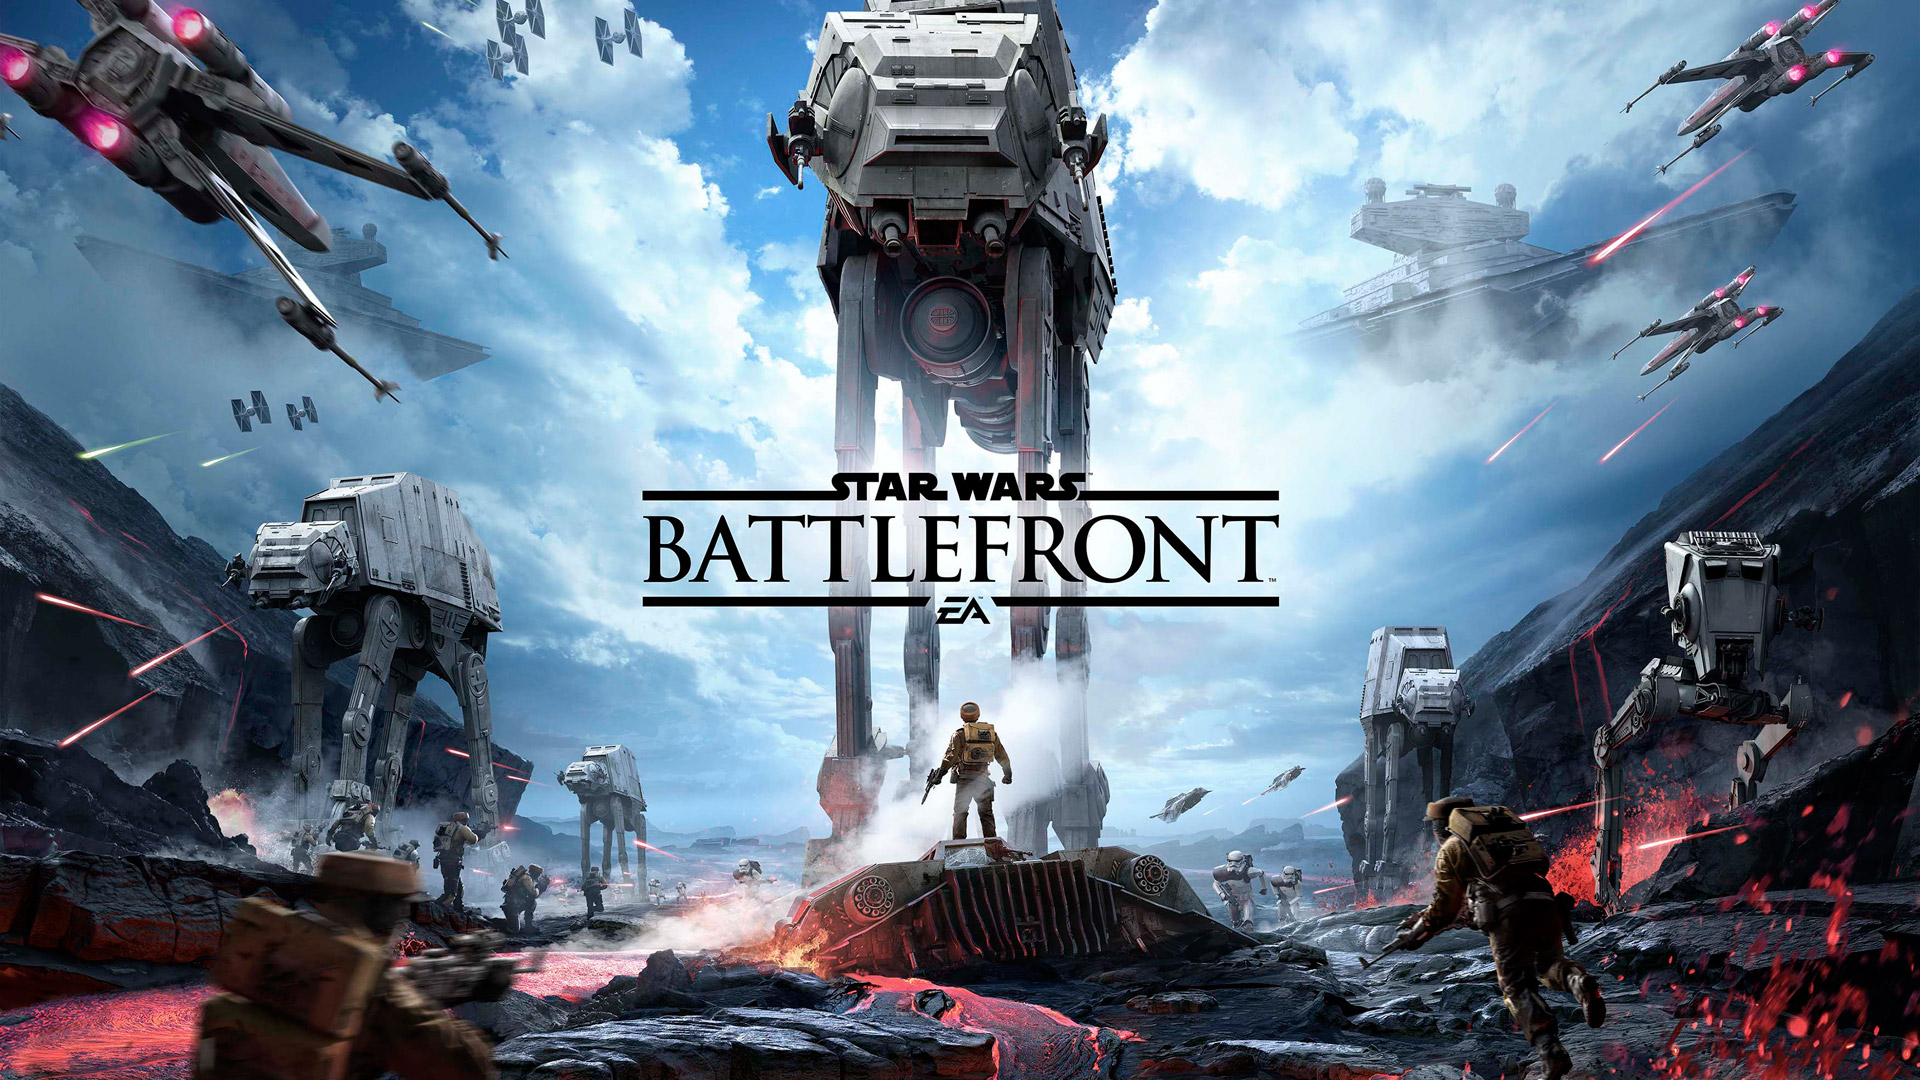 Free Star Wars: Battlefront Wallpaper in 1920x1080